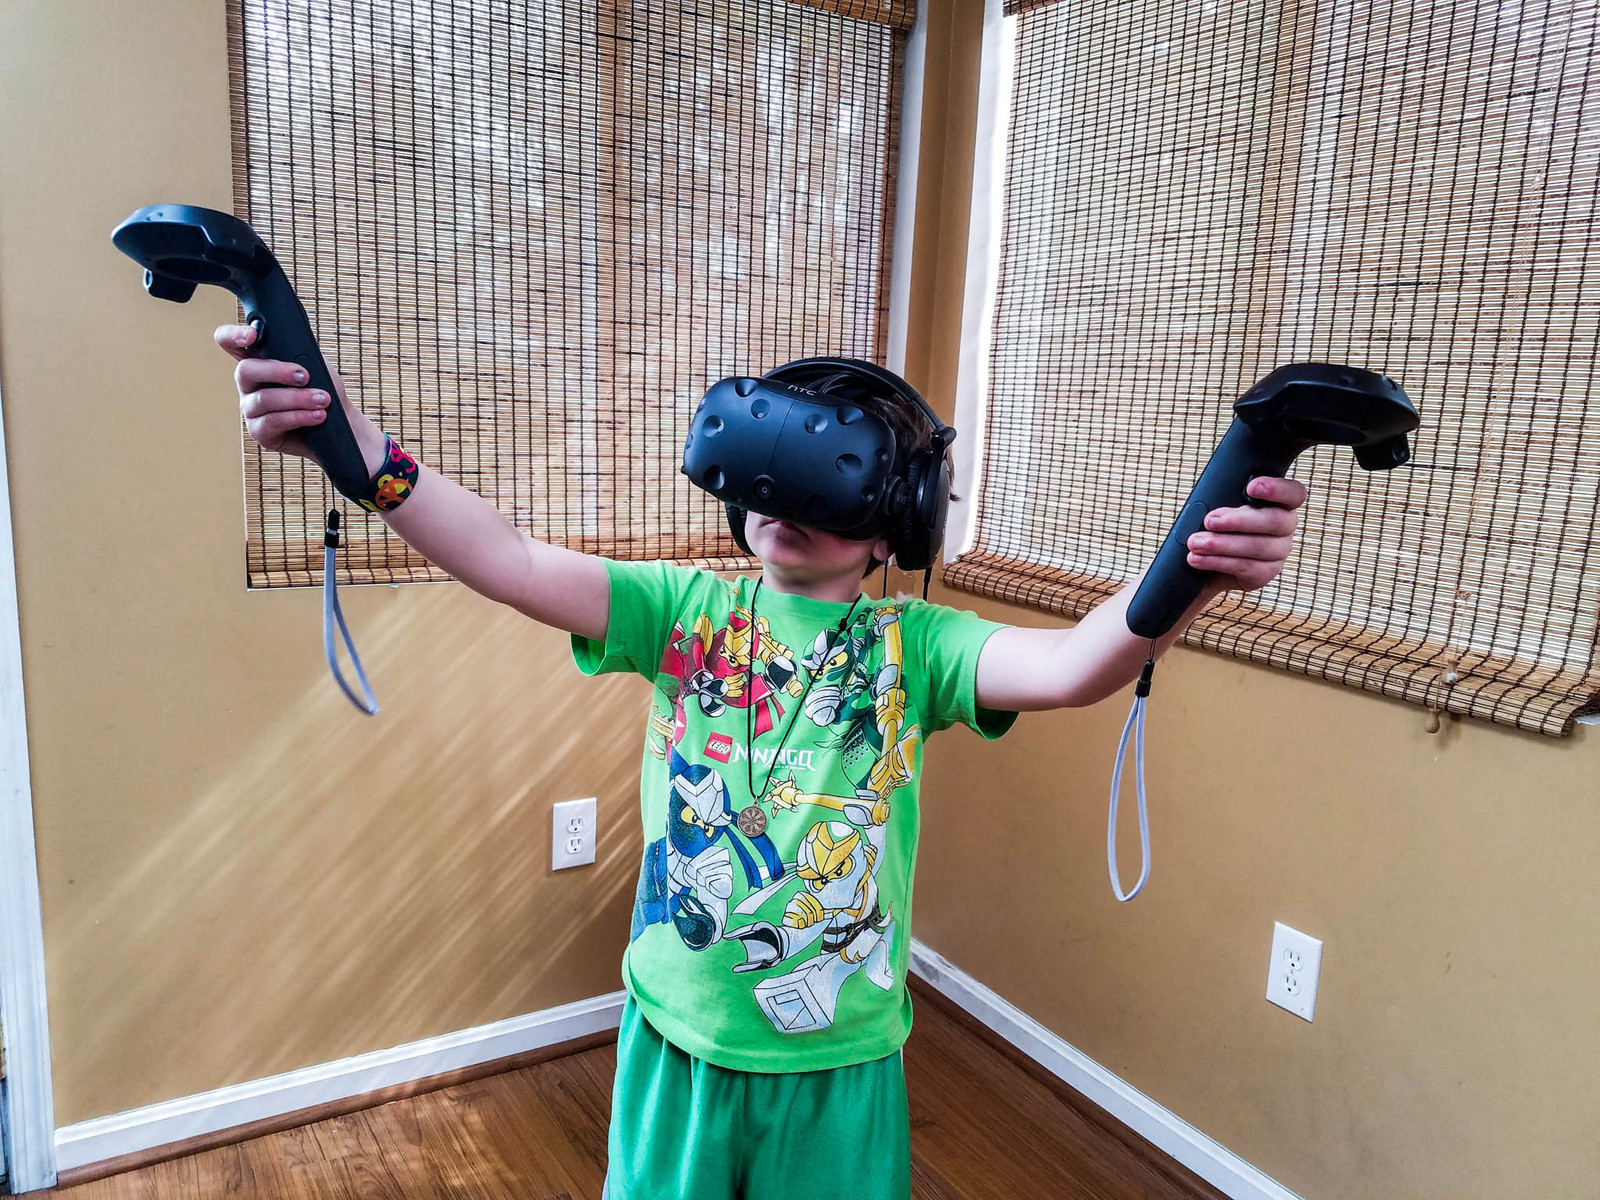 Best HTC Vive experiences for kids